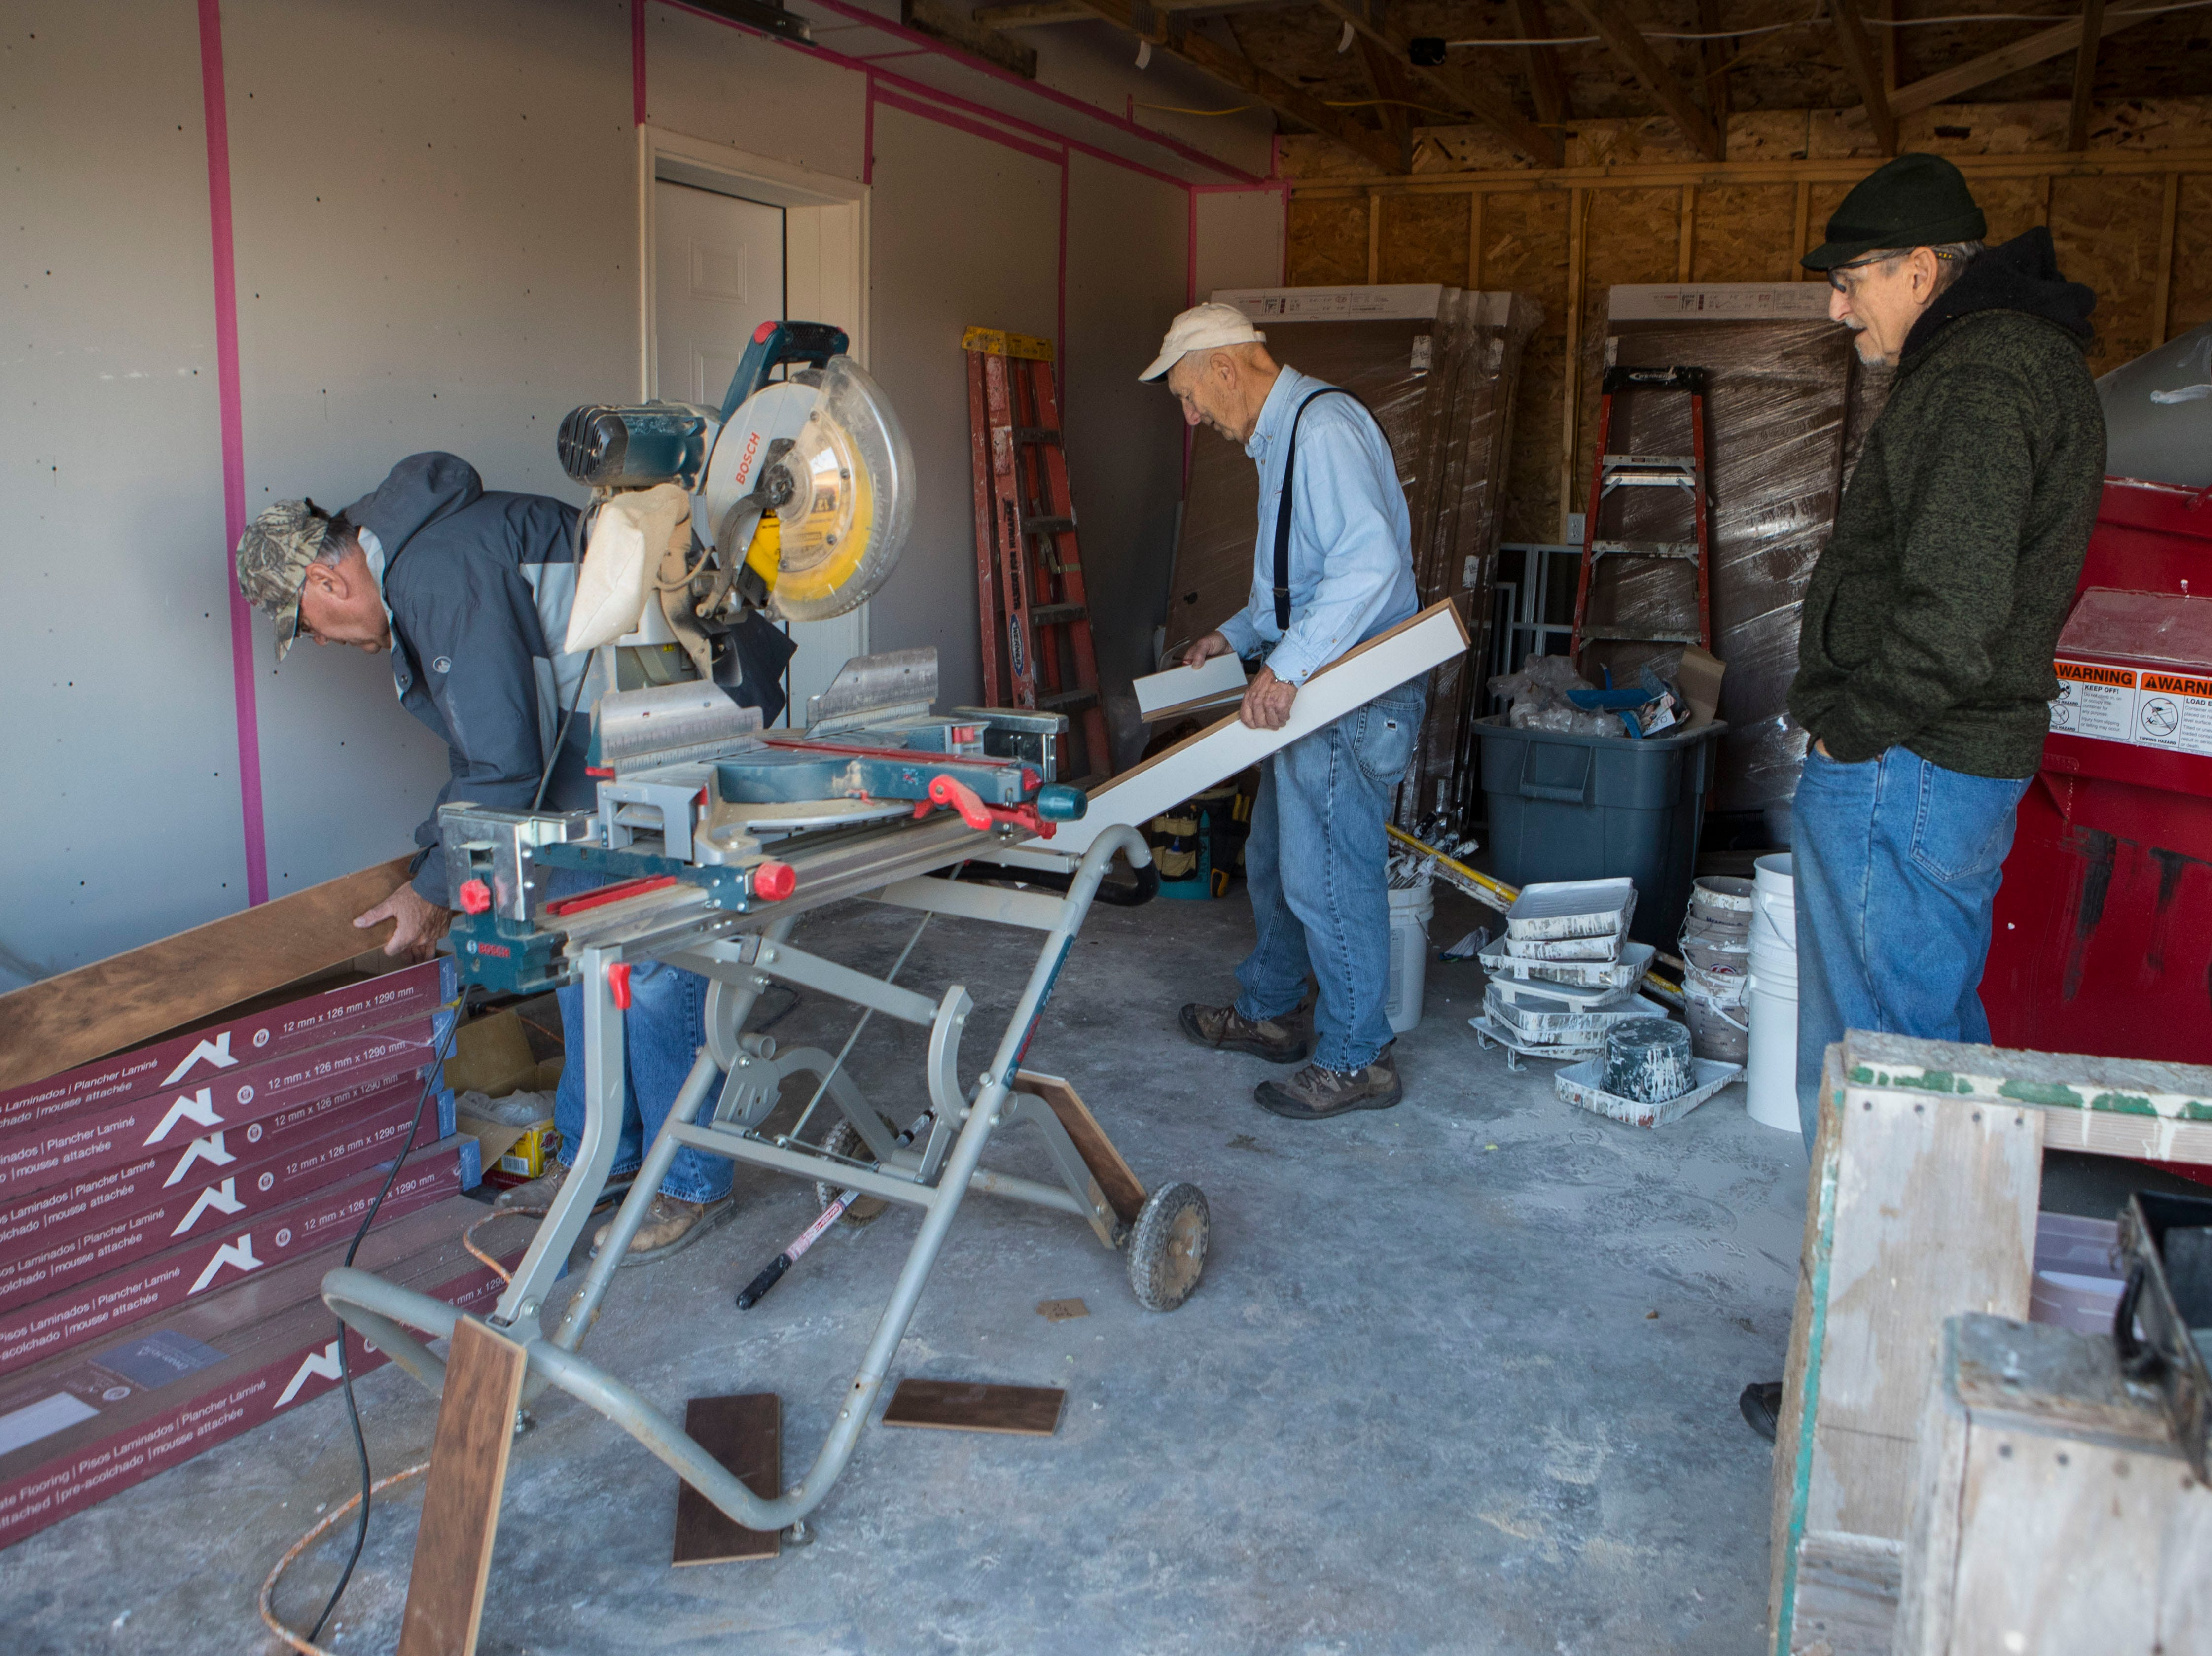 Roger Leistra (left), Arnie Osmundson and Jack Mallek, volunteers for Habitat for Humanity, help build a house in Sioux Falls, S.D., Thursday, Nov. 15, 2018.